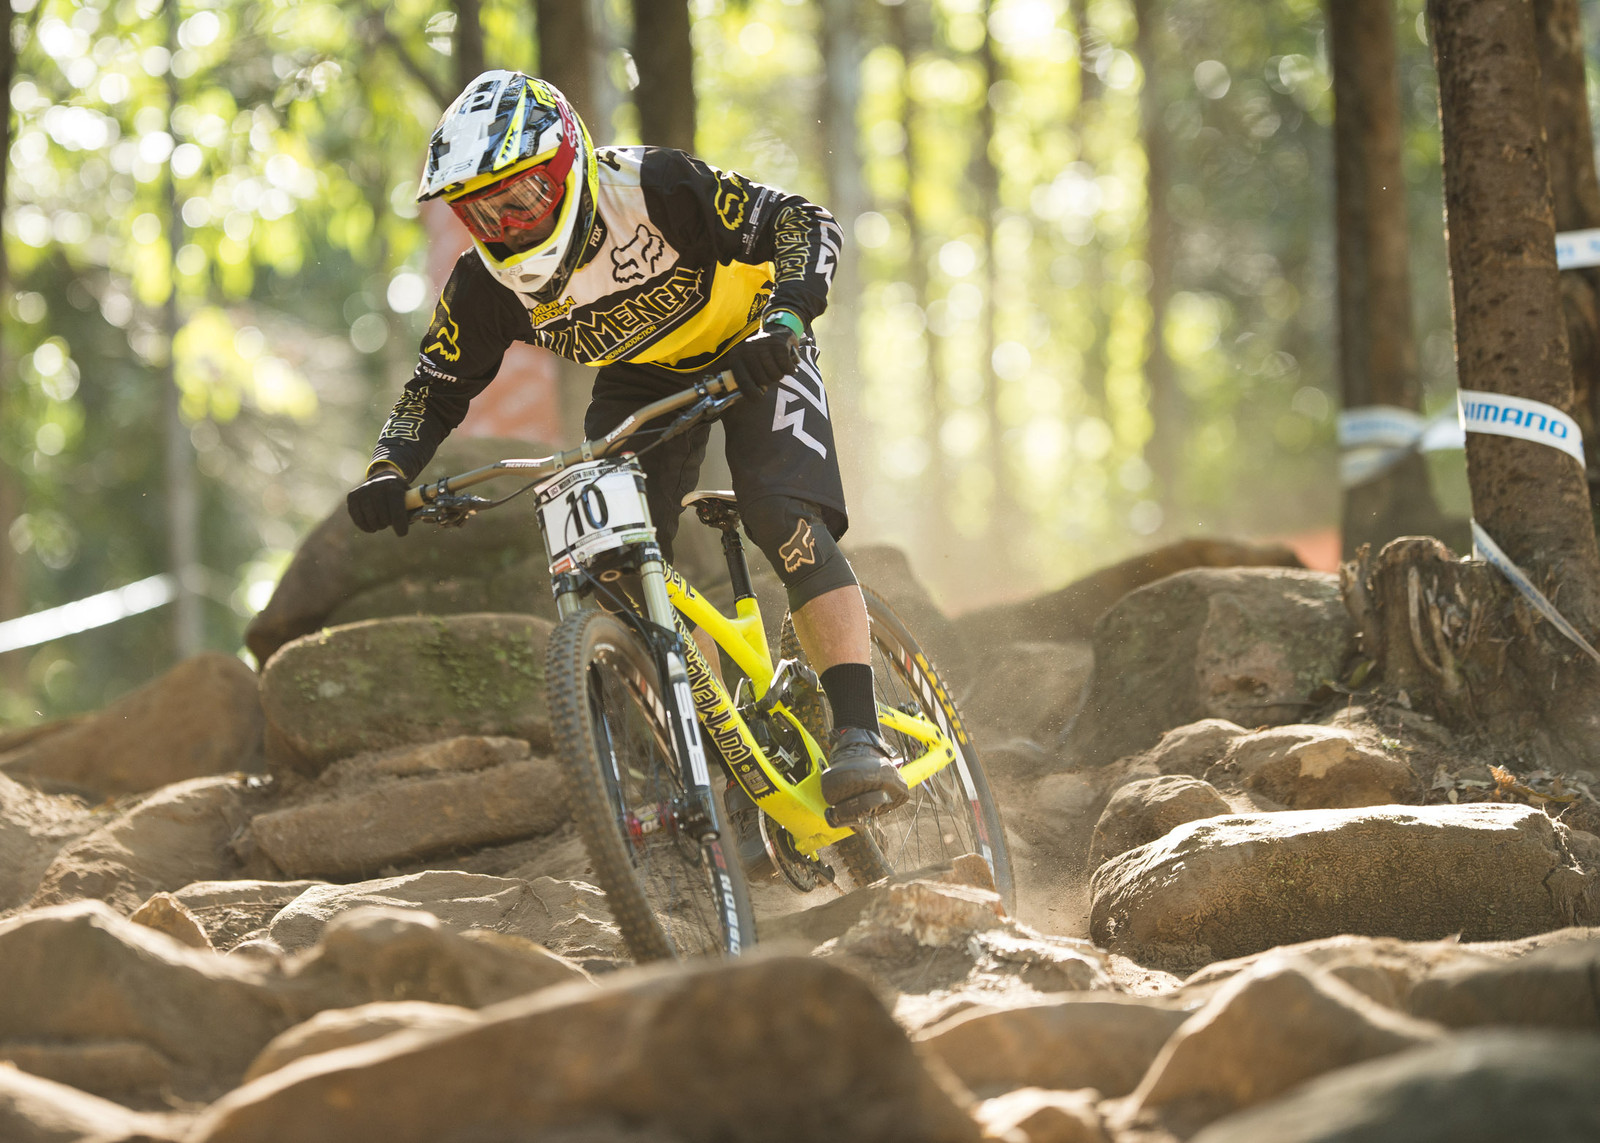 Commencal Riding Addiction, Pietermaritzburg World Cup - Commencal Riding Addiction World Cup Photos - Mountain Biking Pictures - Vital MTB